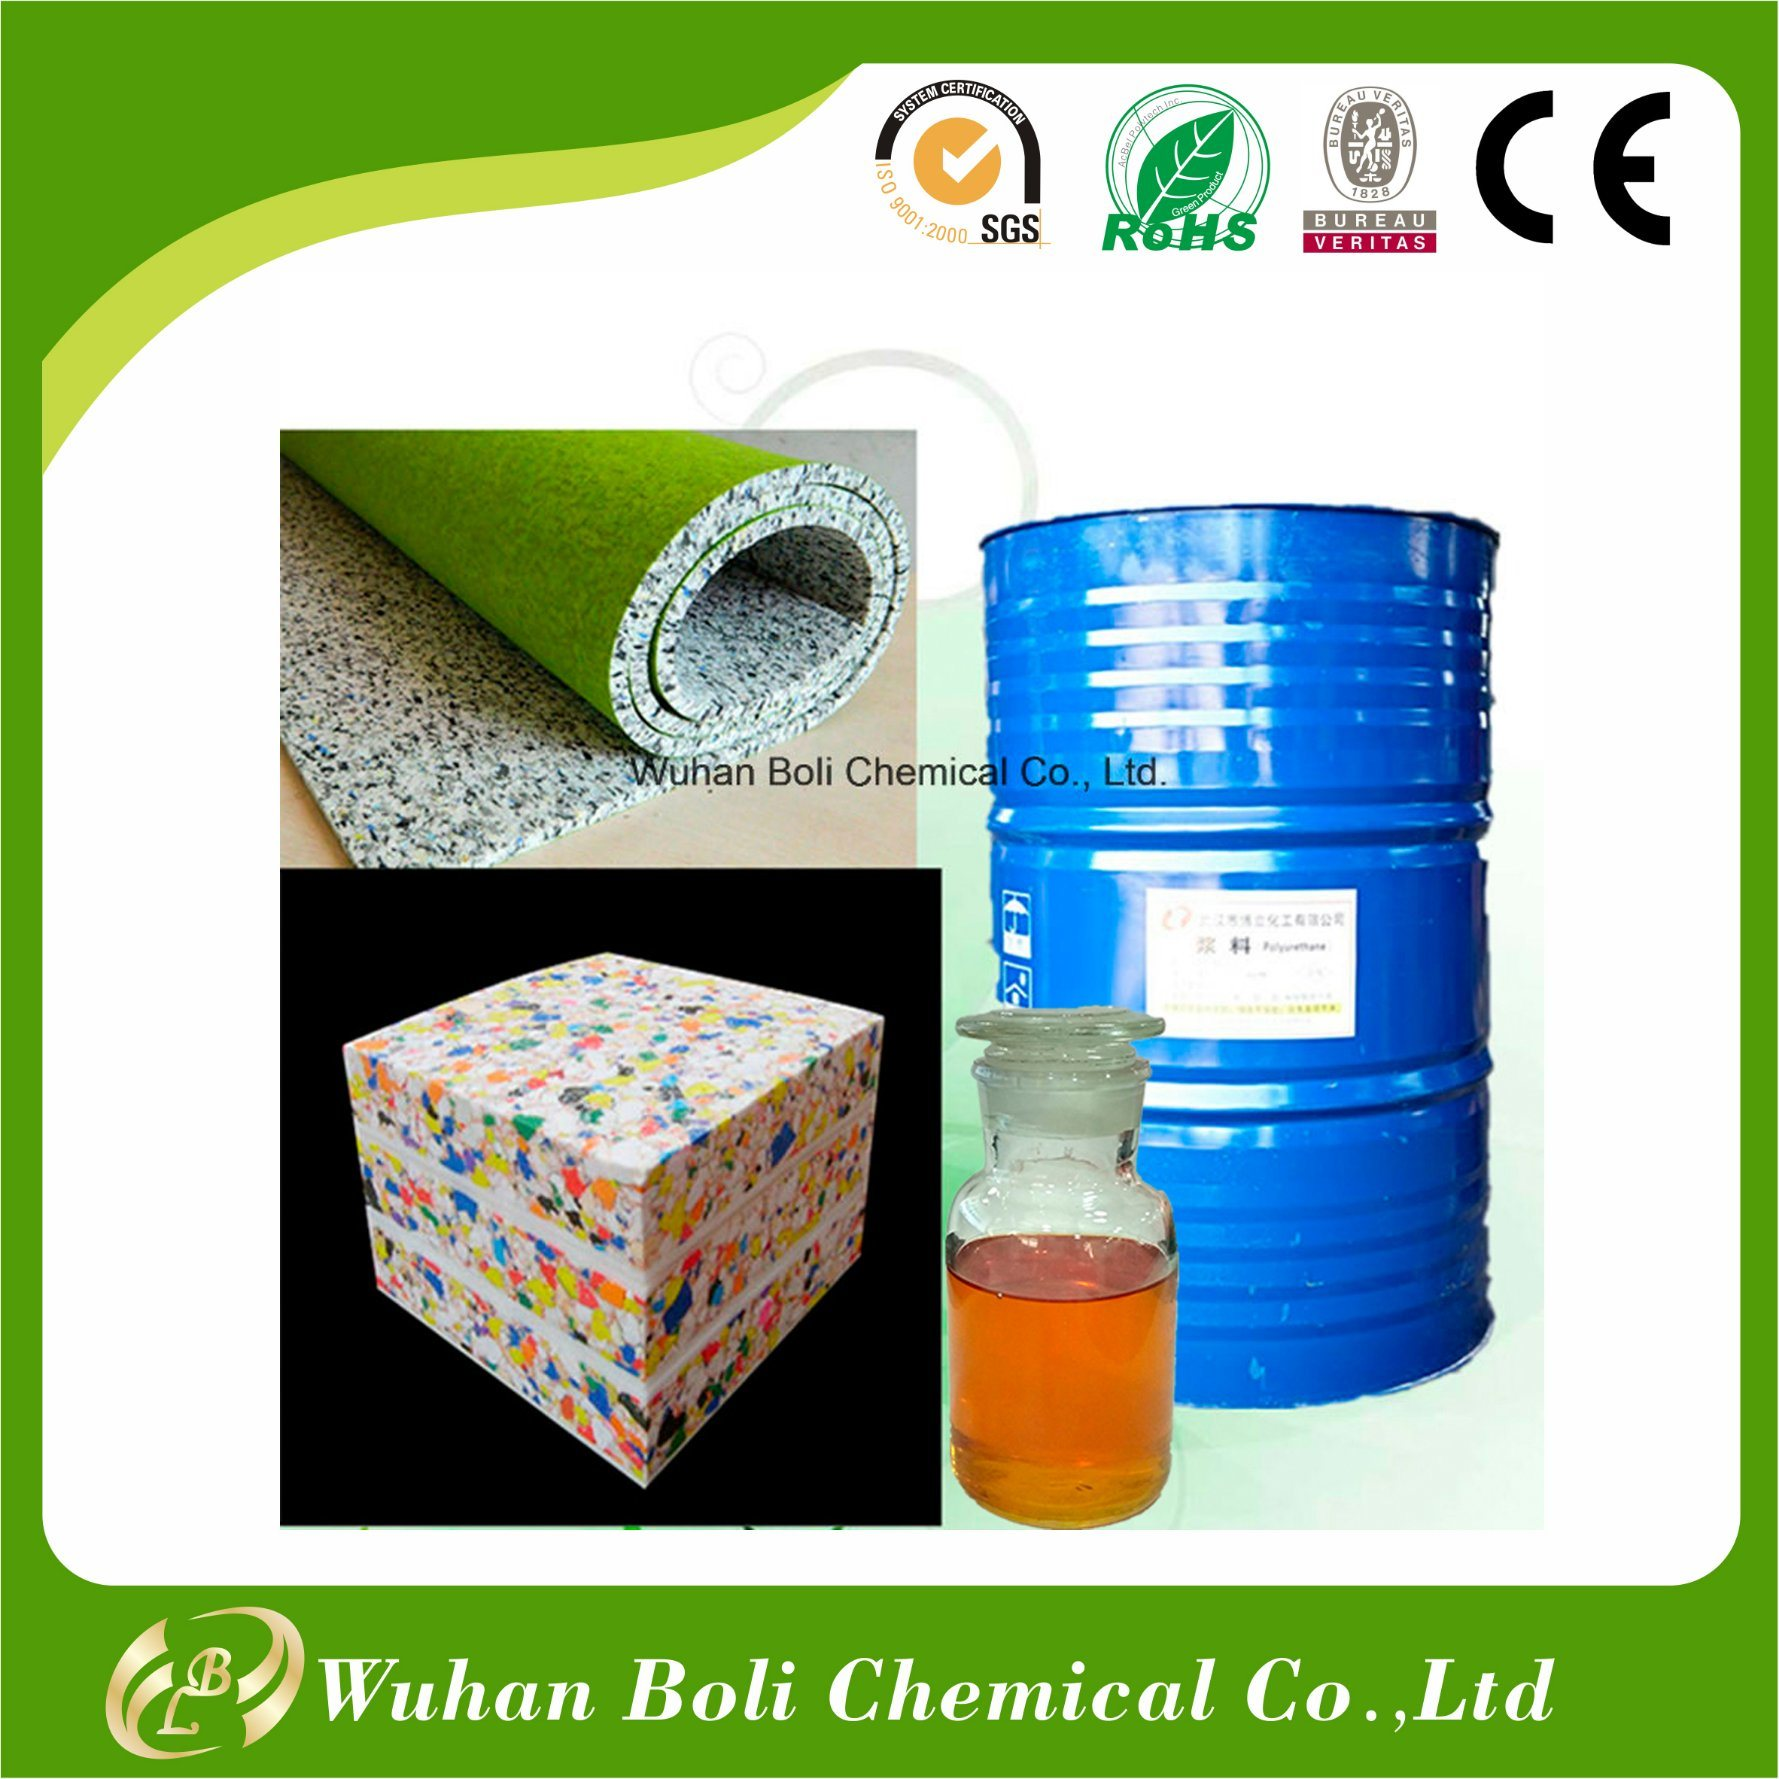 Made in China Chemical Polyurethane Adhesive for Sponge Scrap Foam and Scrap Rubber